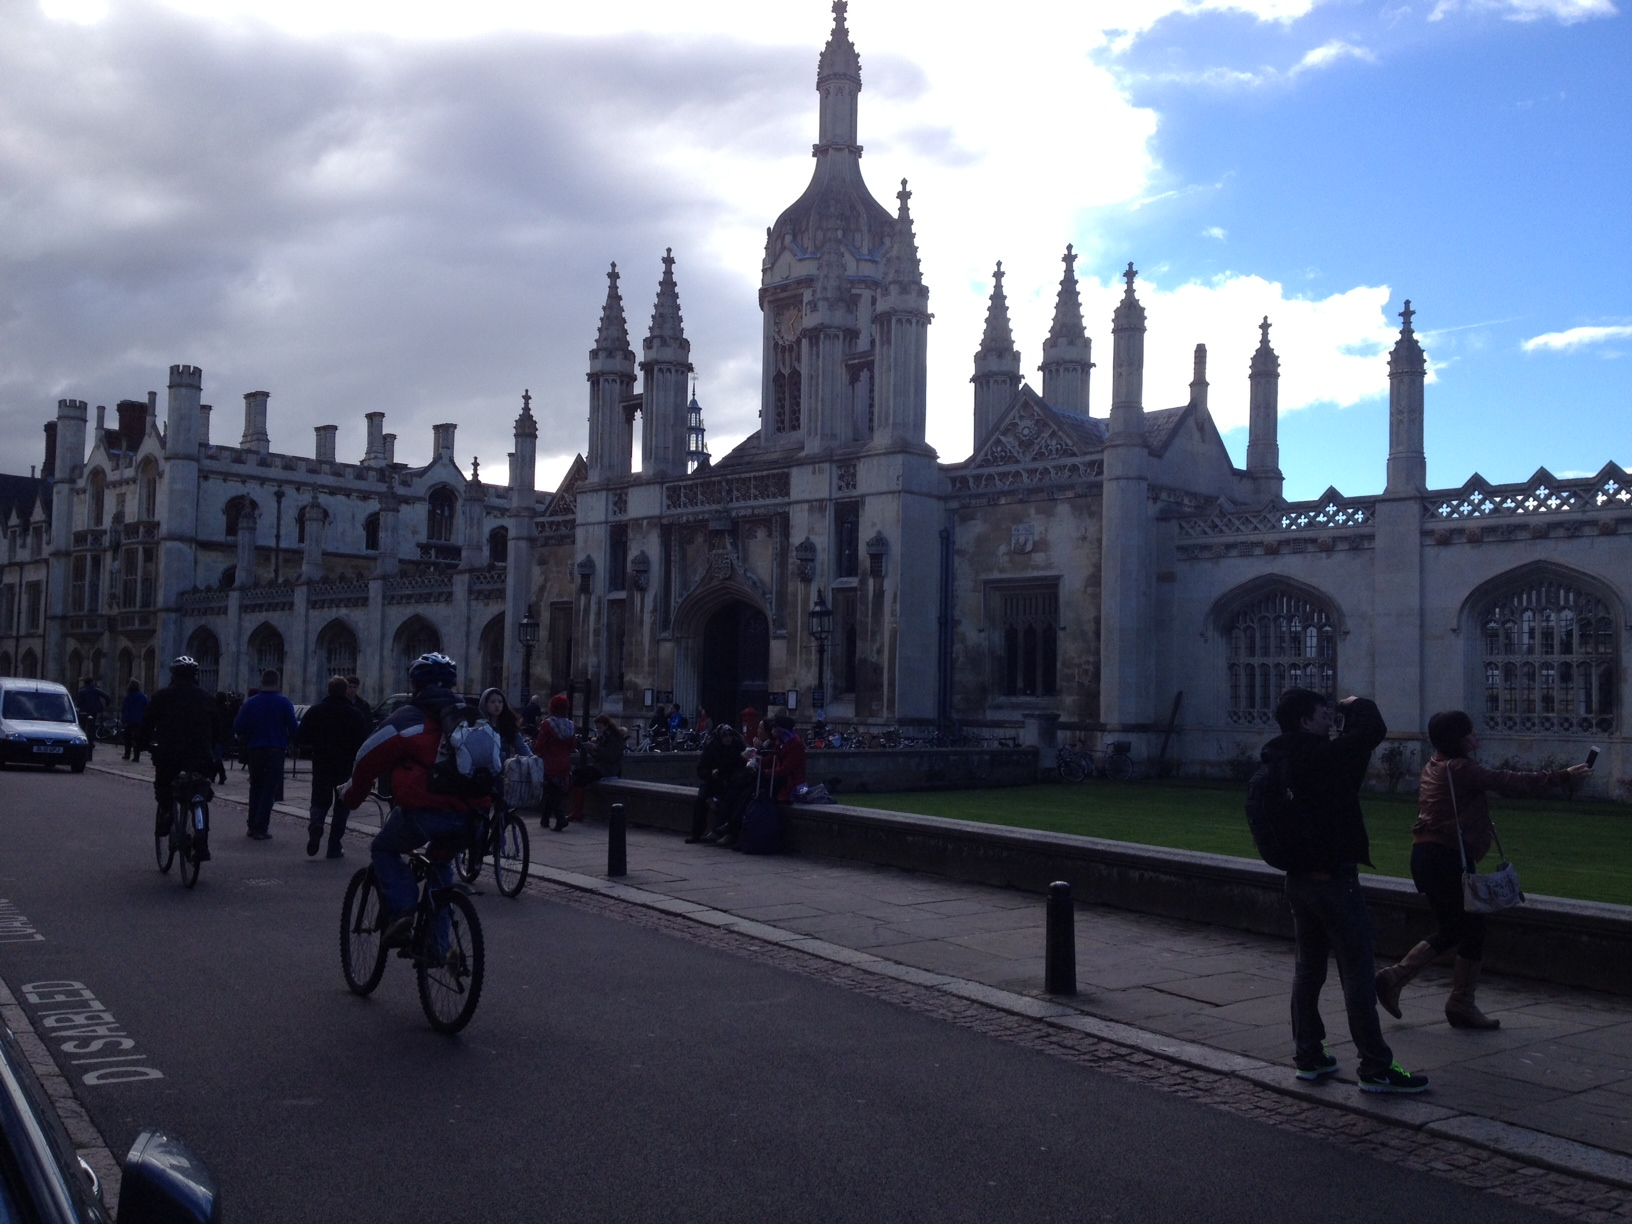 Kings college Cambridge